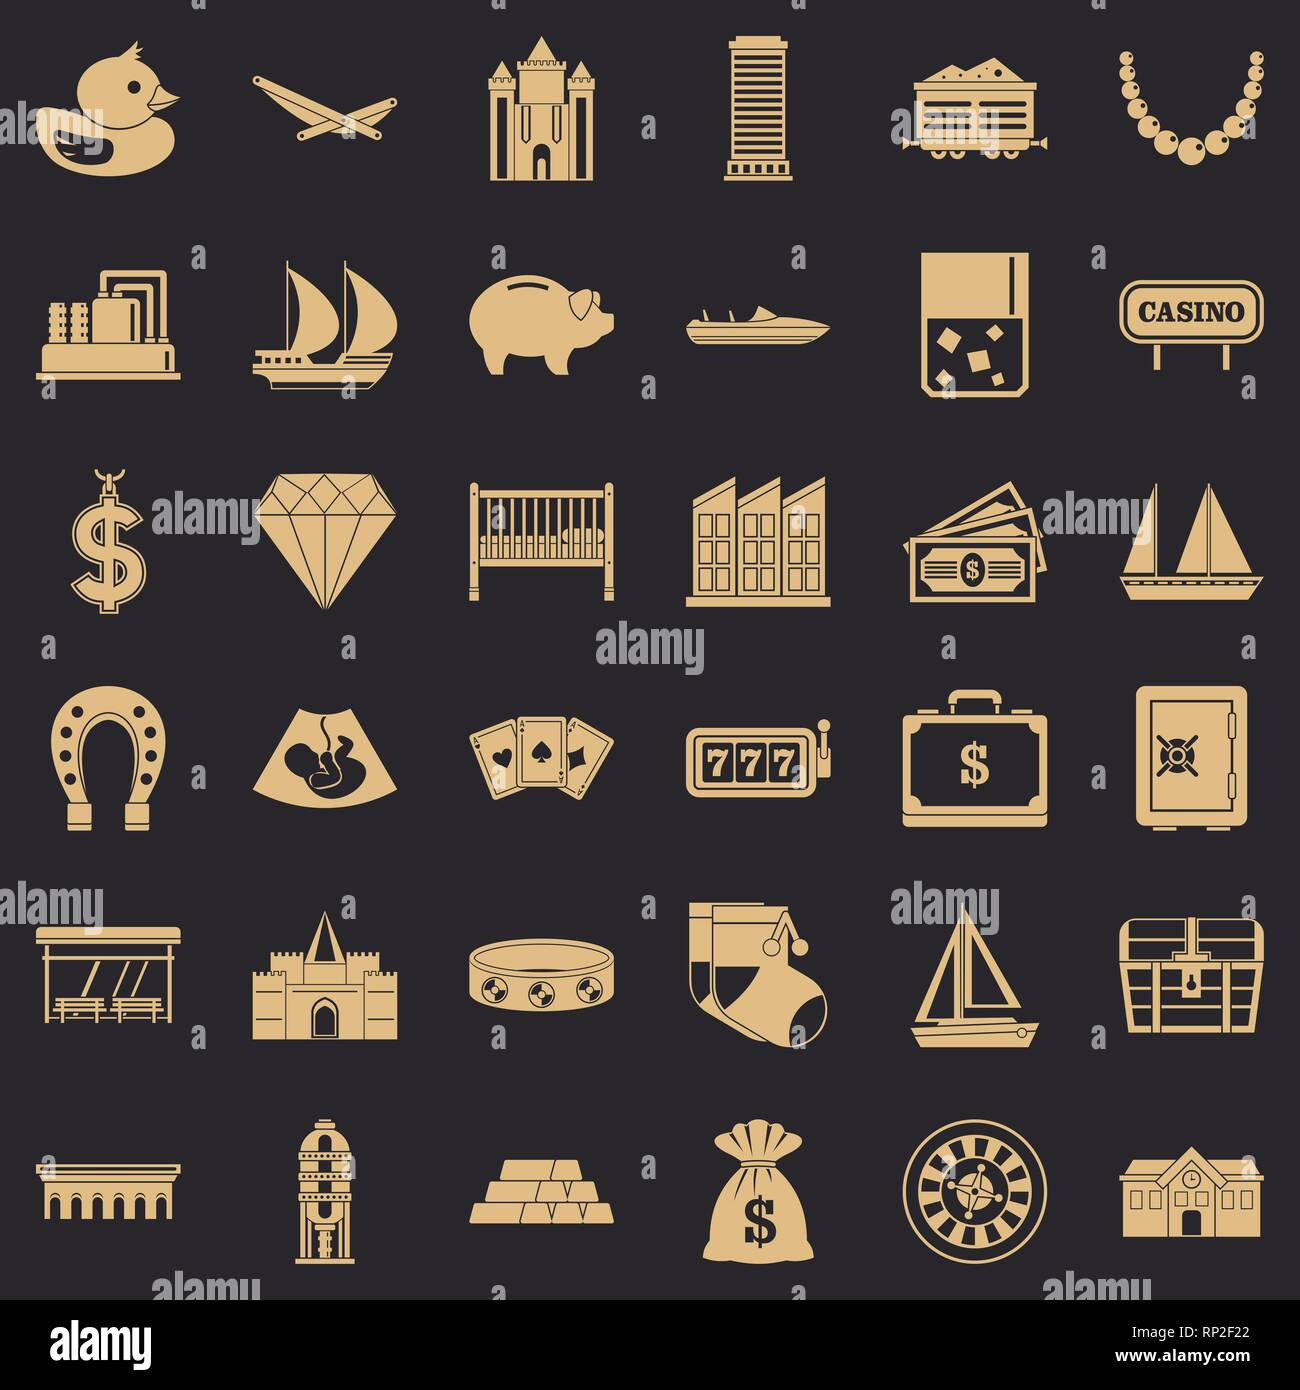 Riches icons set, simple style - Stock Image